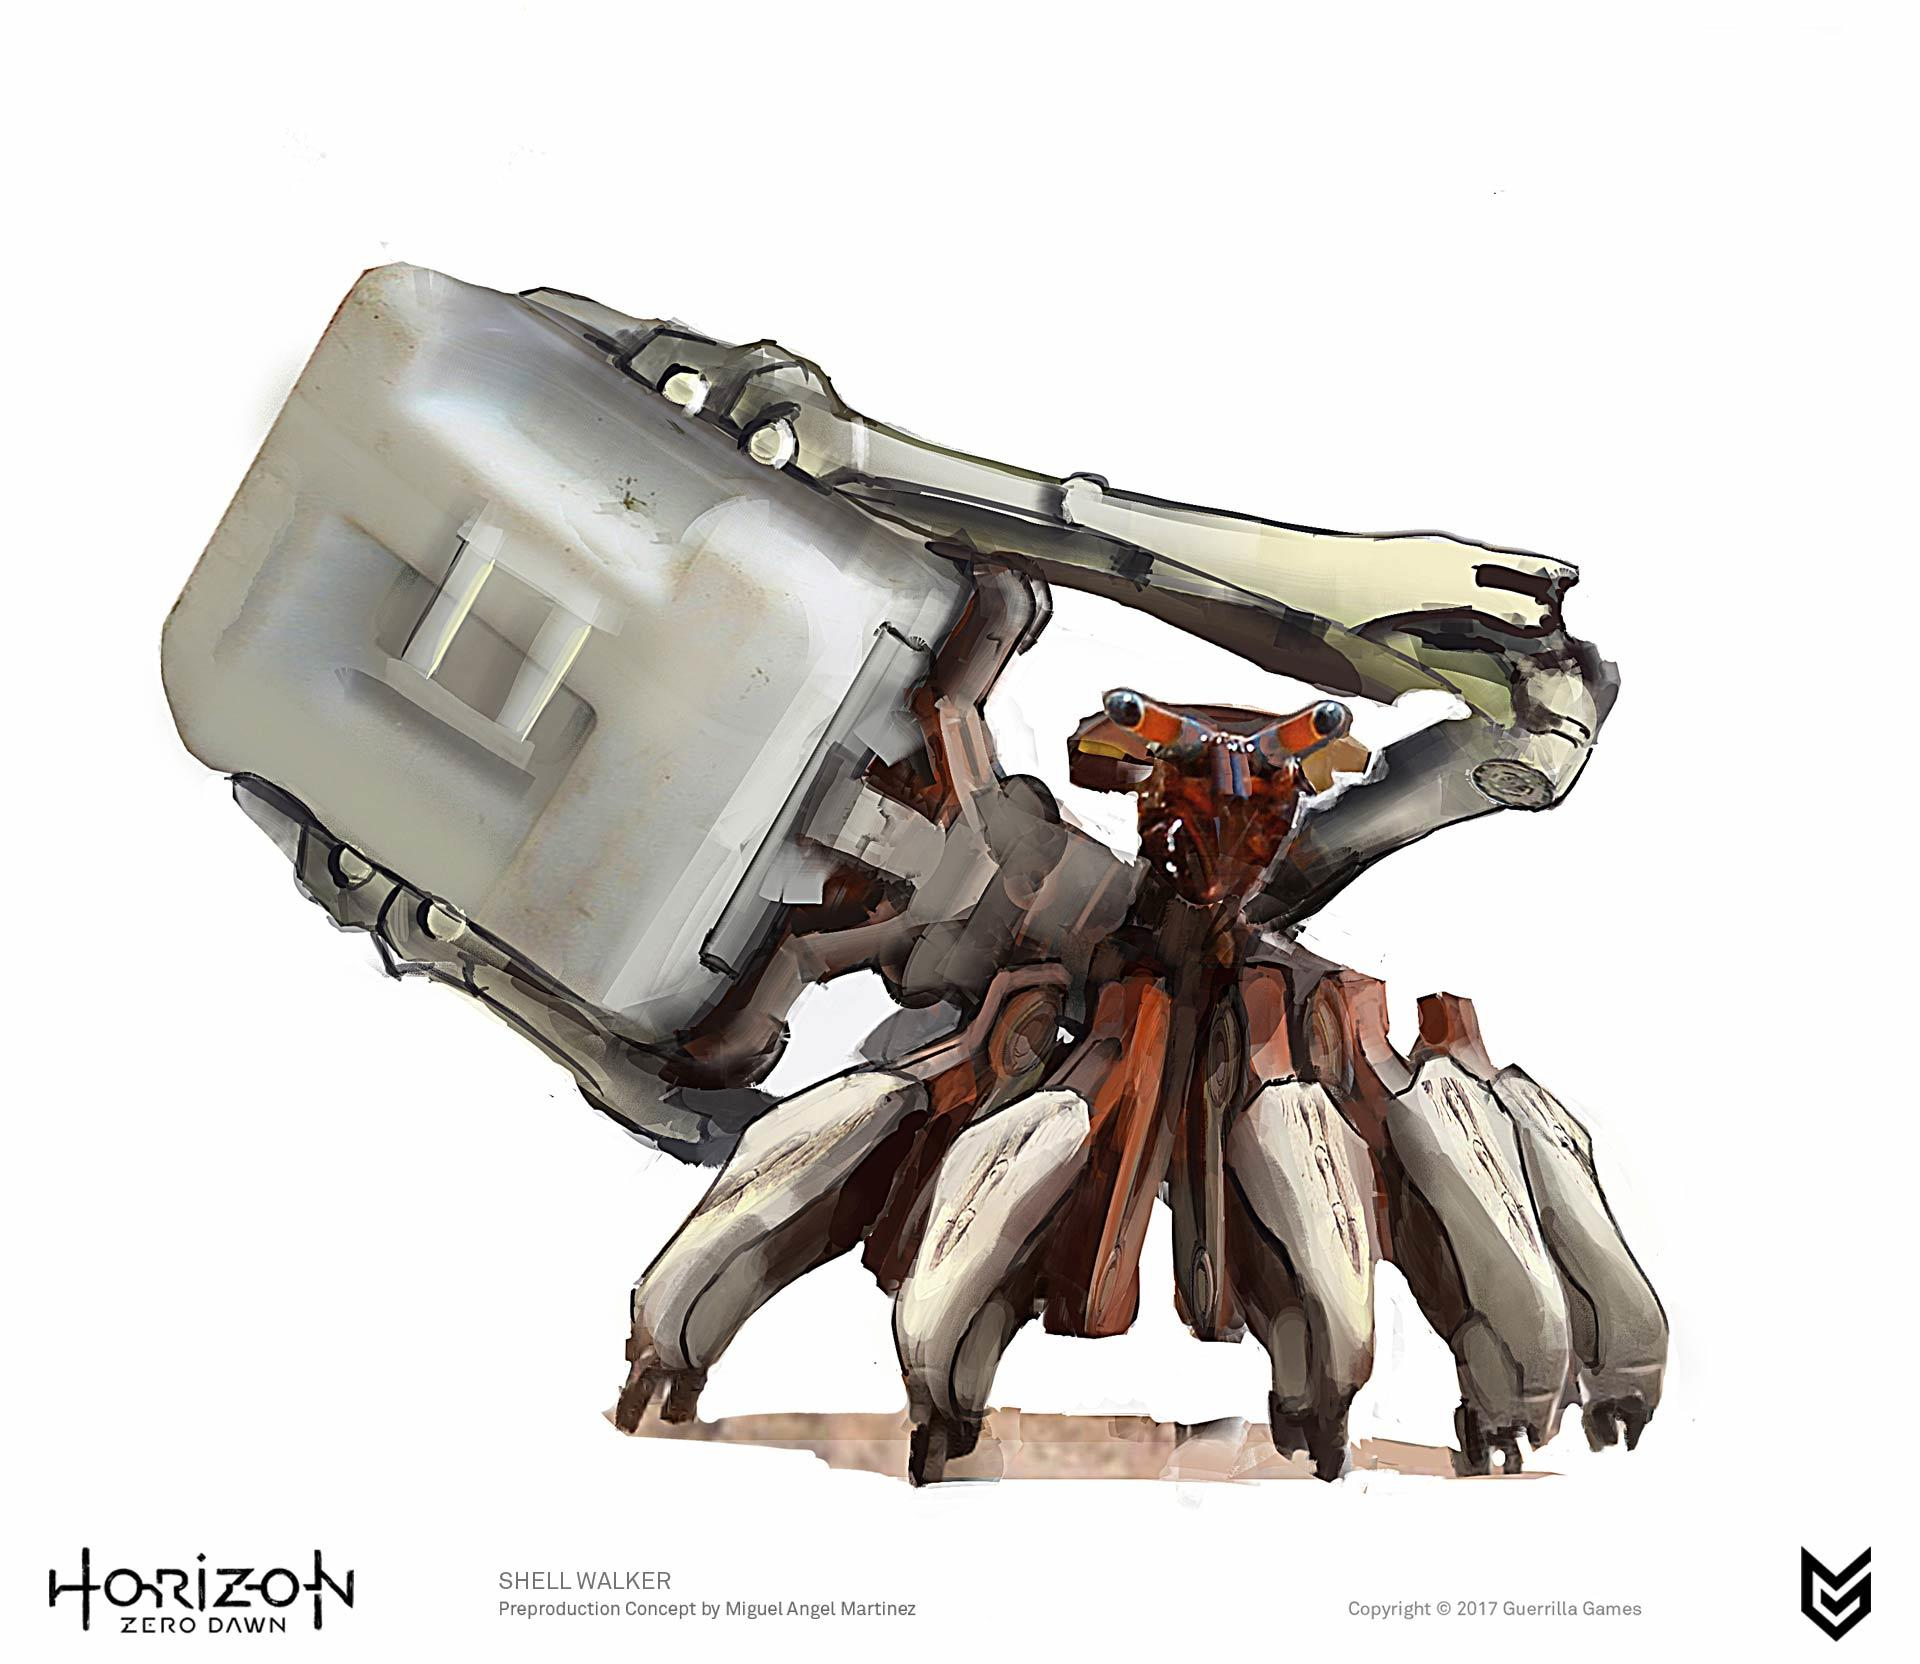 Horizon-Zero-Dawn-Shell-Walker-concept-art-2-Miguel-Angel-Martinez